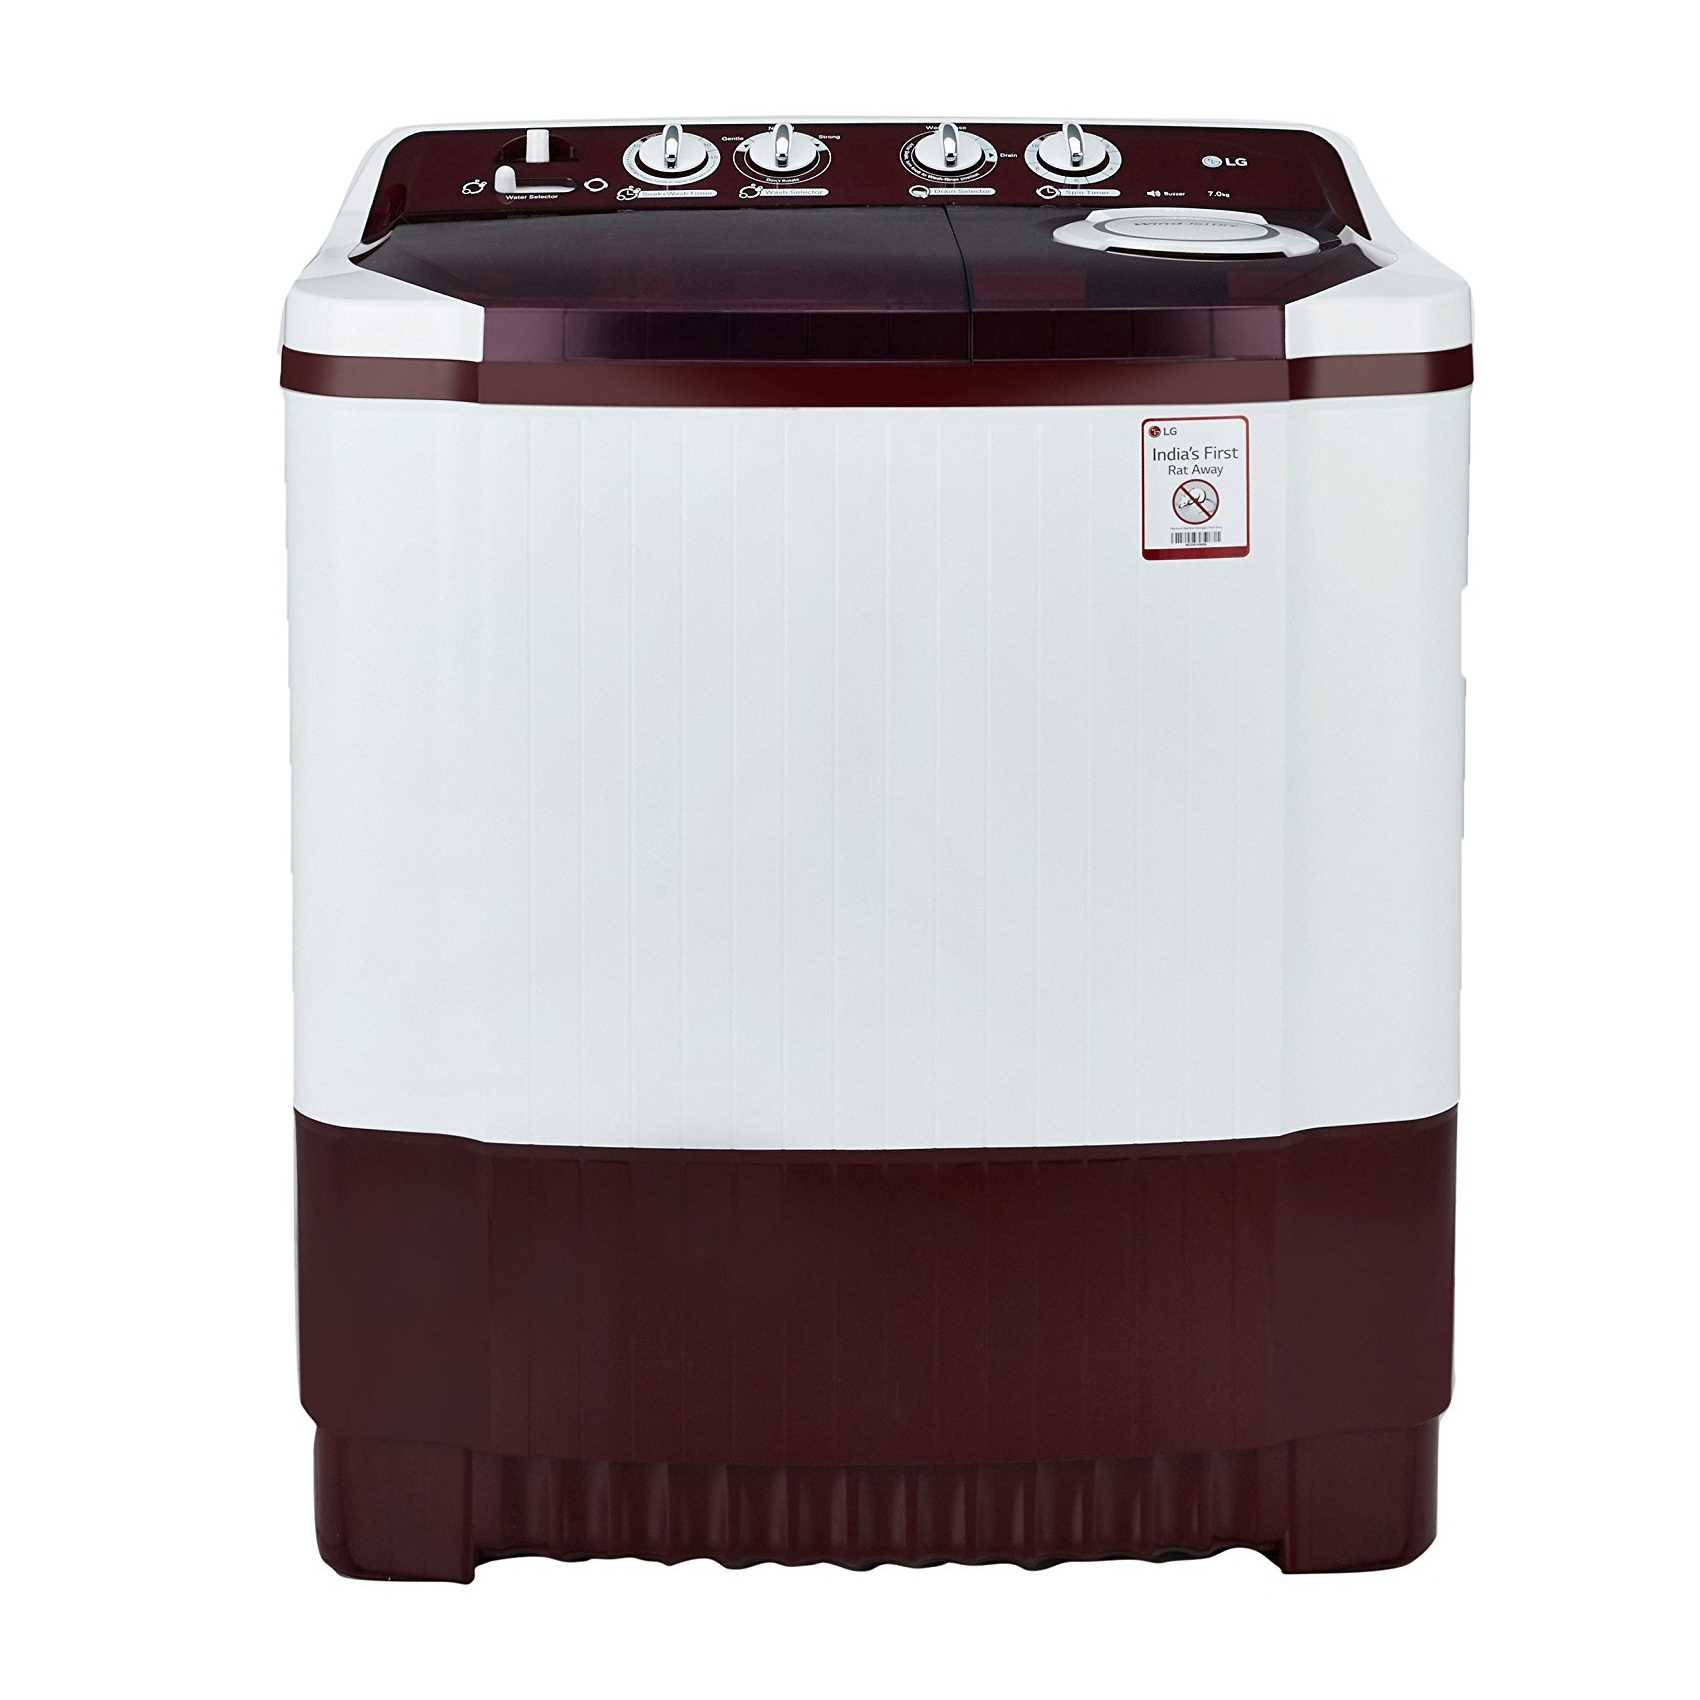 LG P8053R3SA 7 Kg Semi Automatic Top Loading Washing Machine